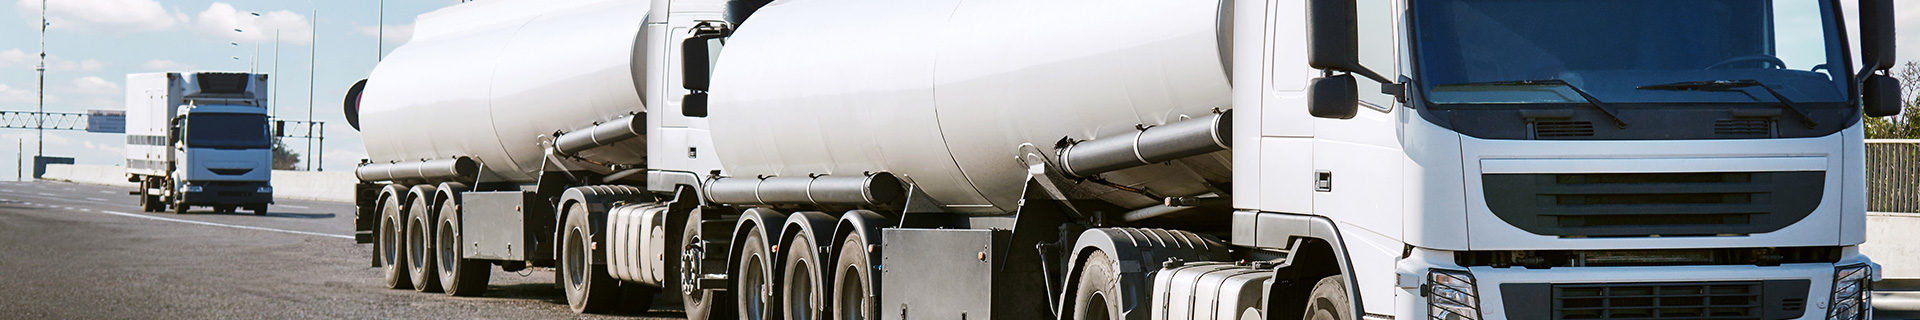 Transportation of Dangerous Goods Canada (TDG)